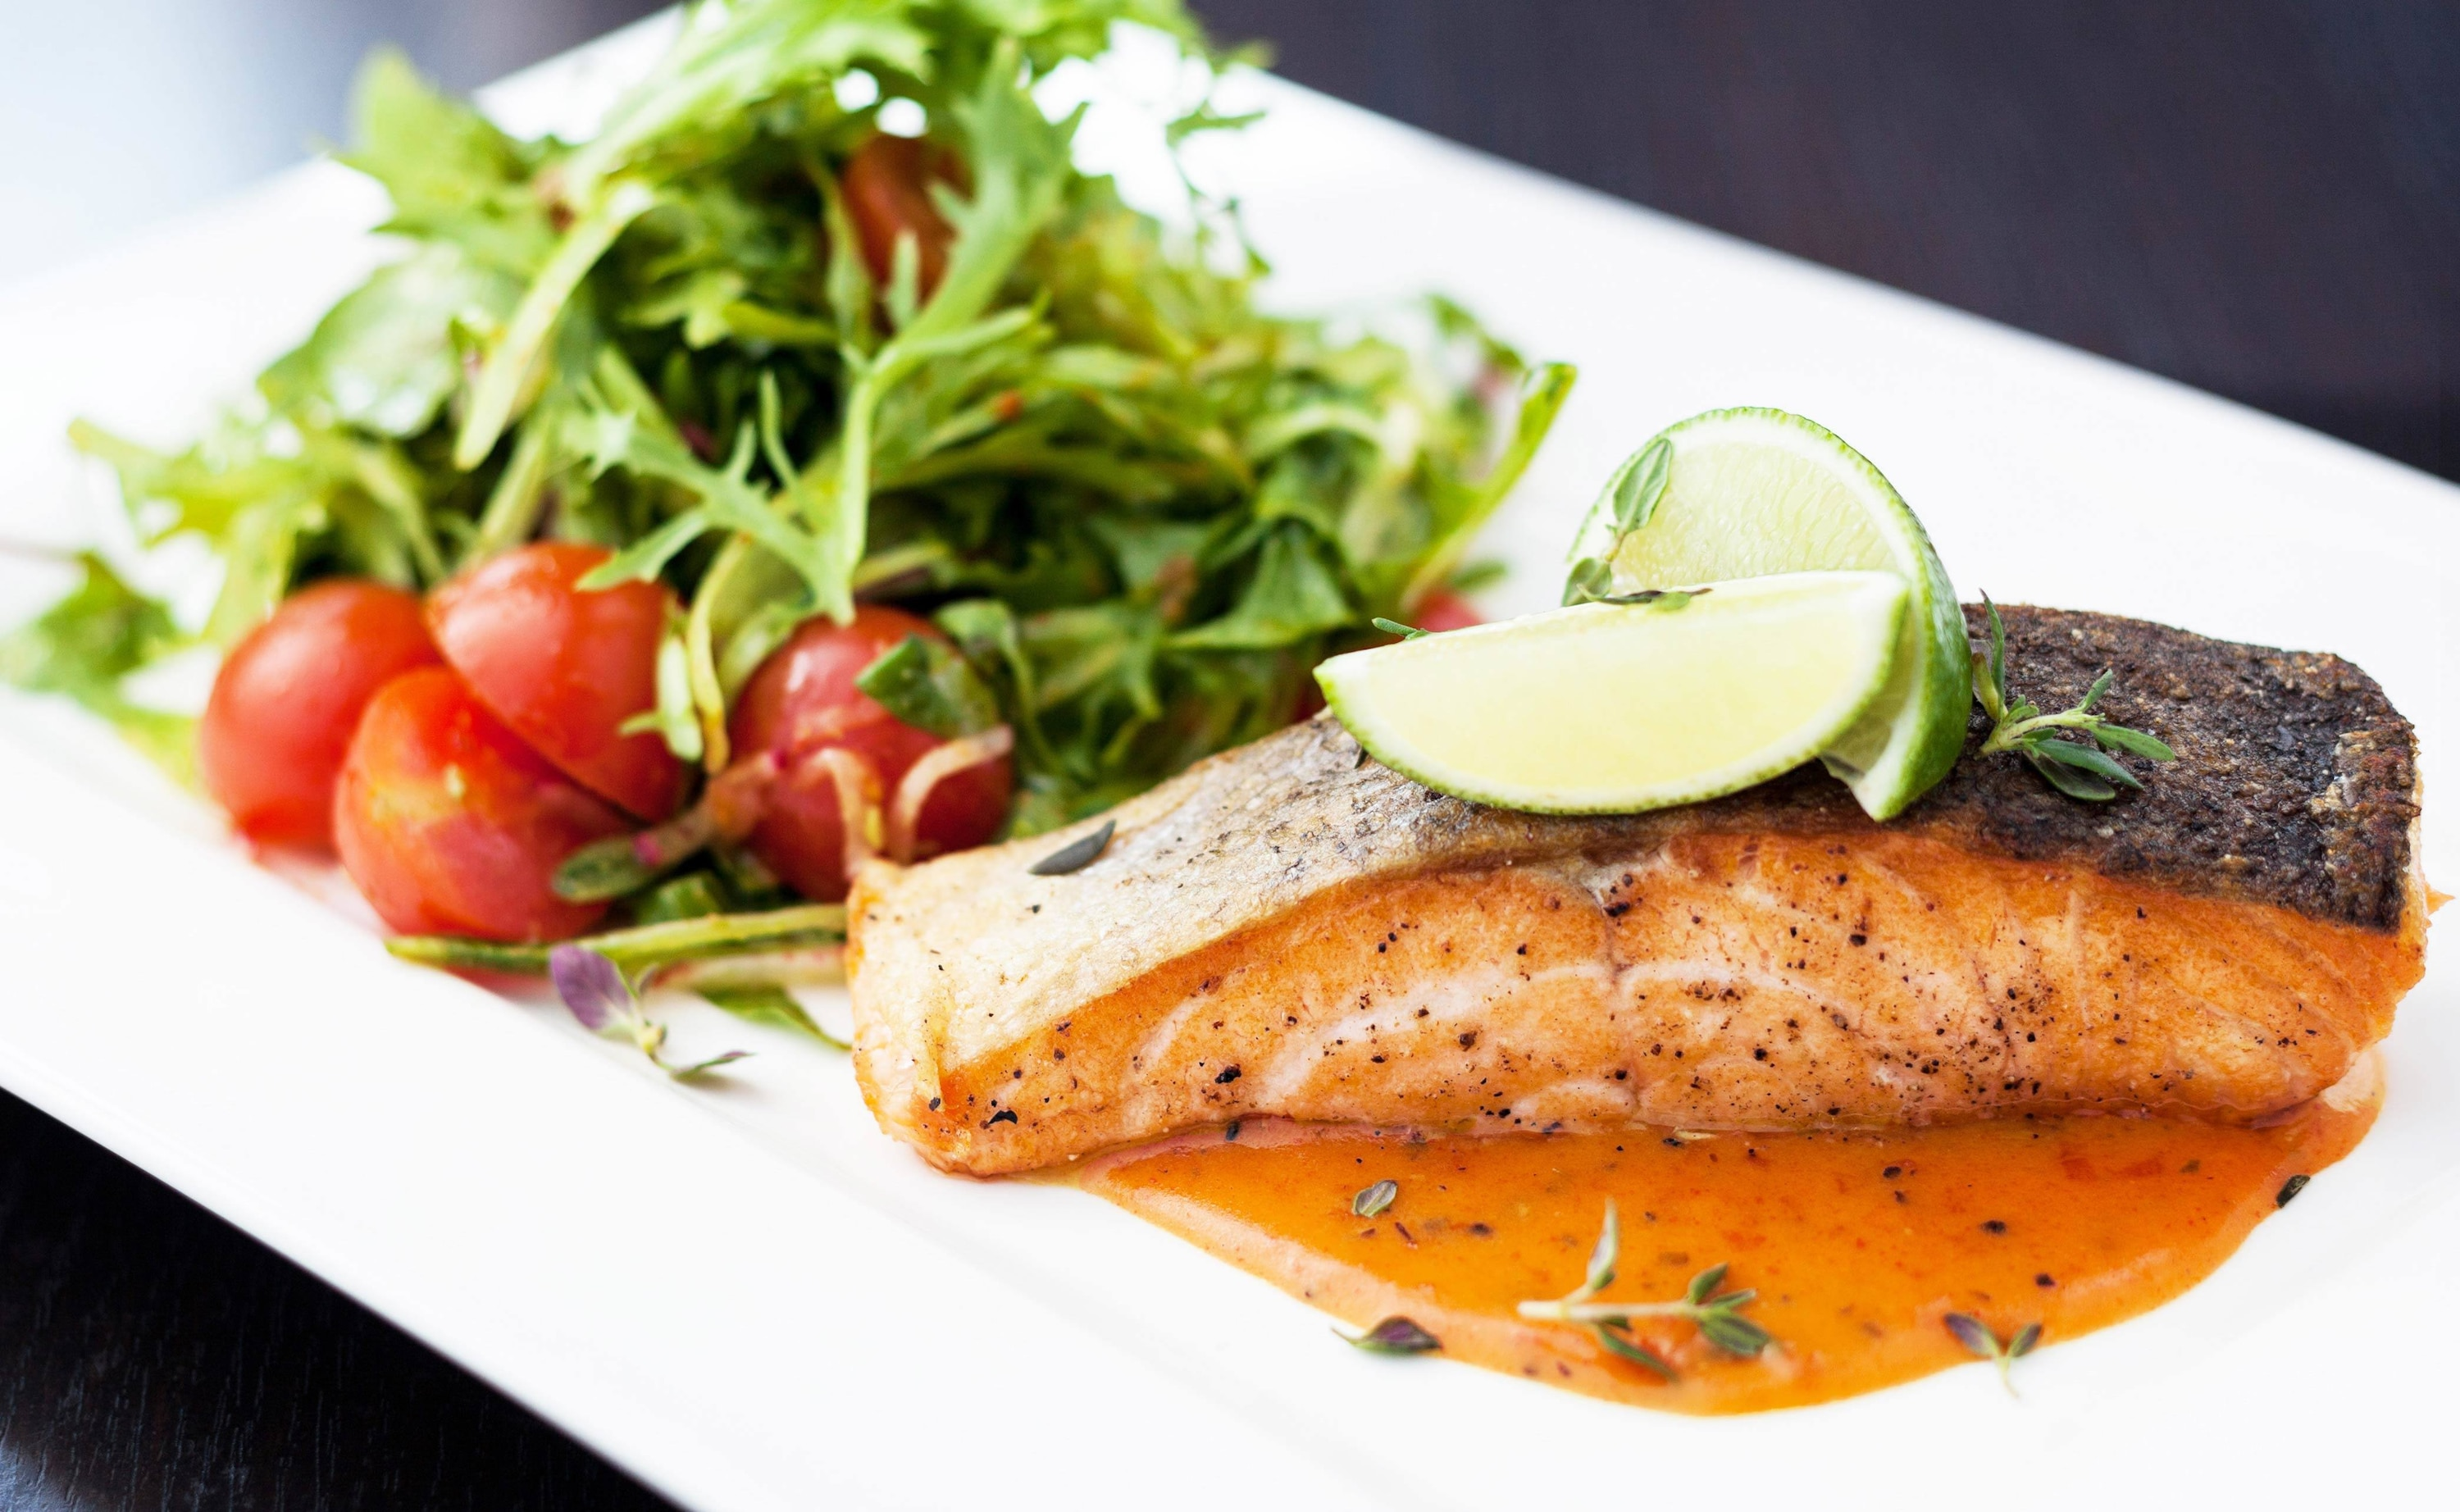 Roasted Salmon Fillet with Tomato Sauce